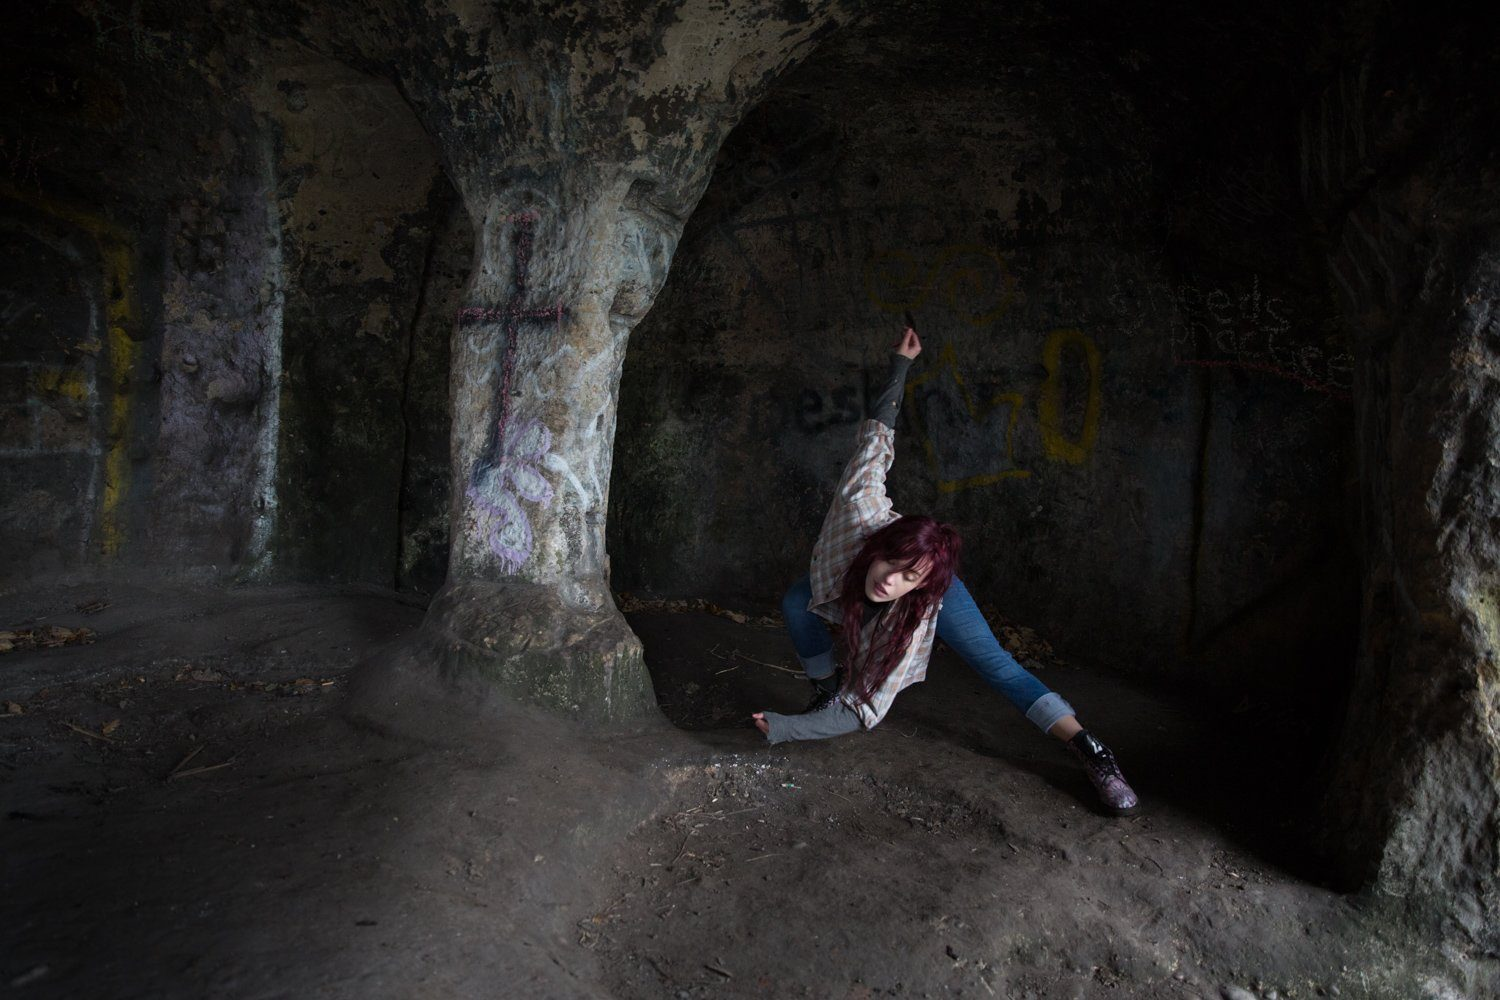 Dancing Laura twisting her body in the cave